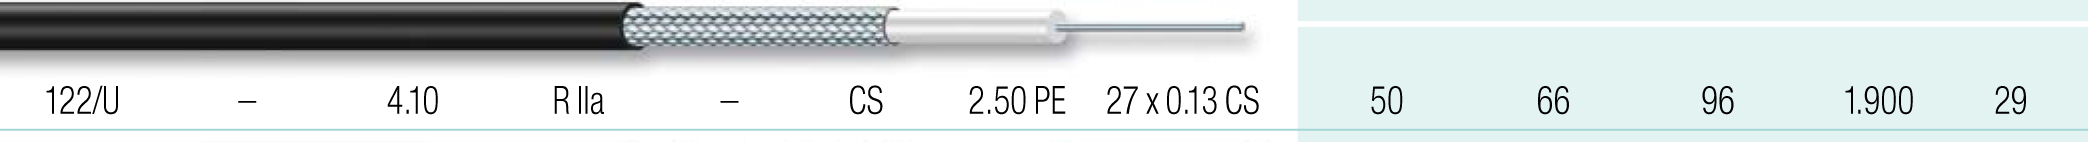 Cable coaxial 28